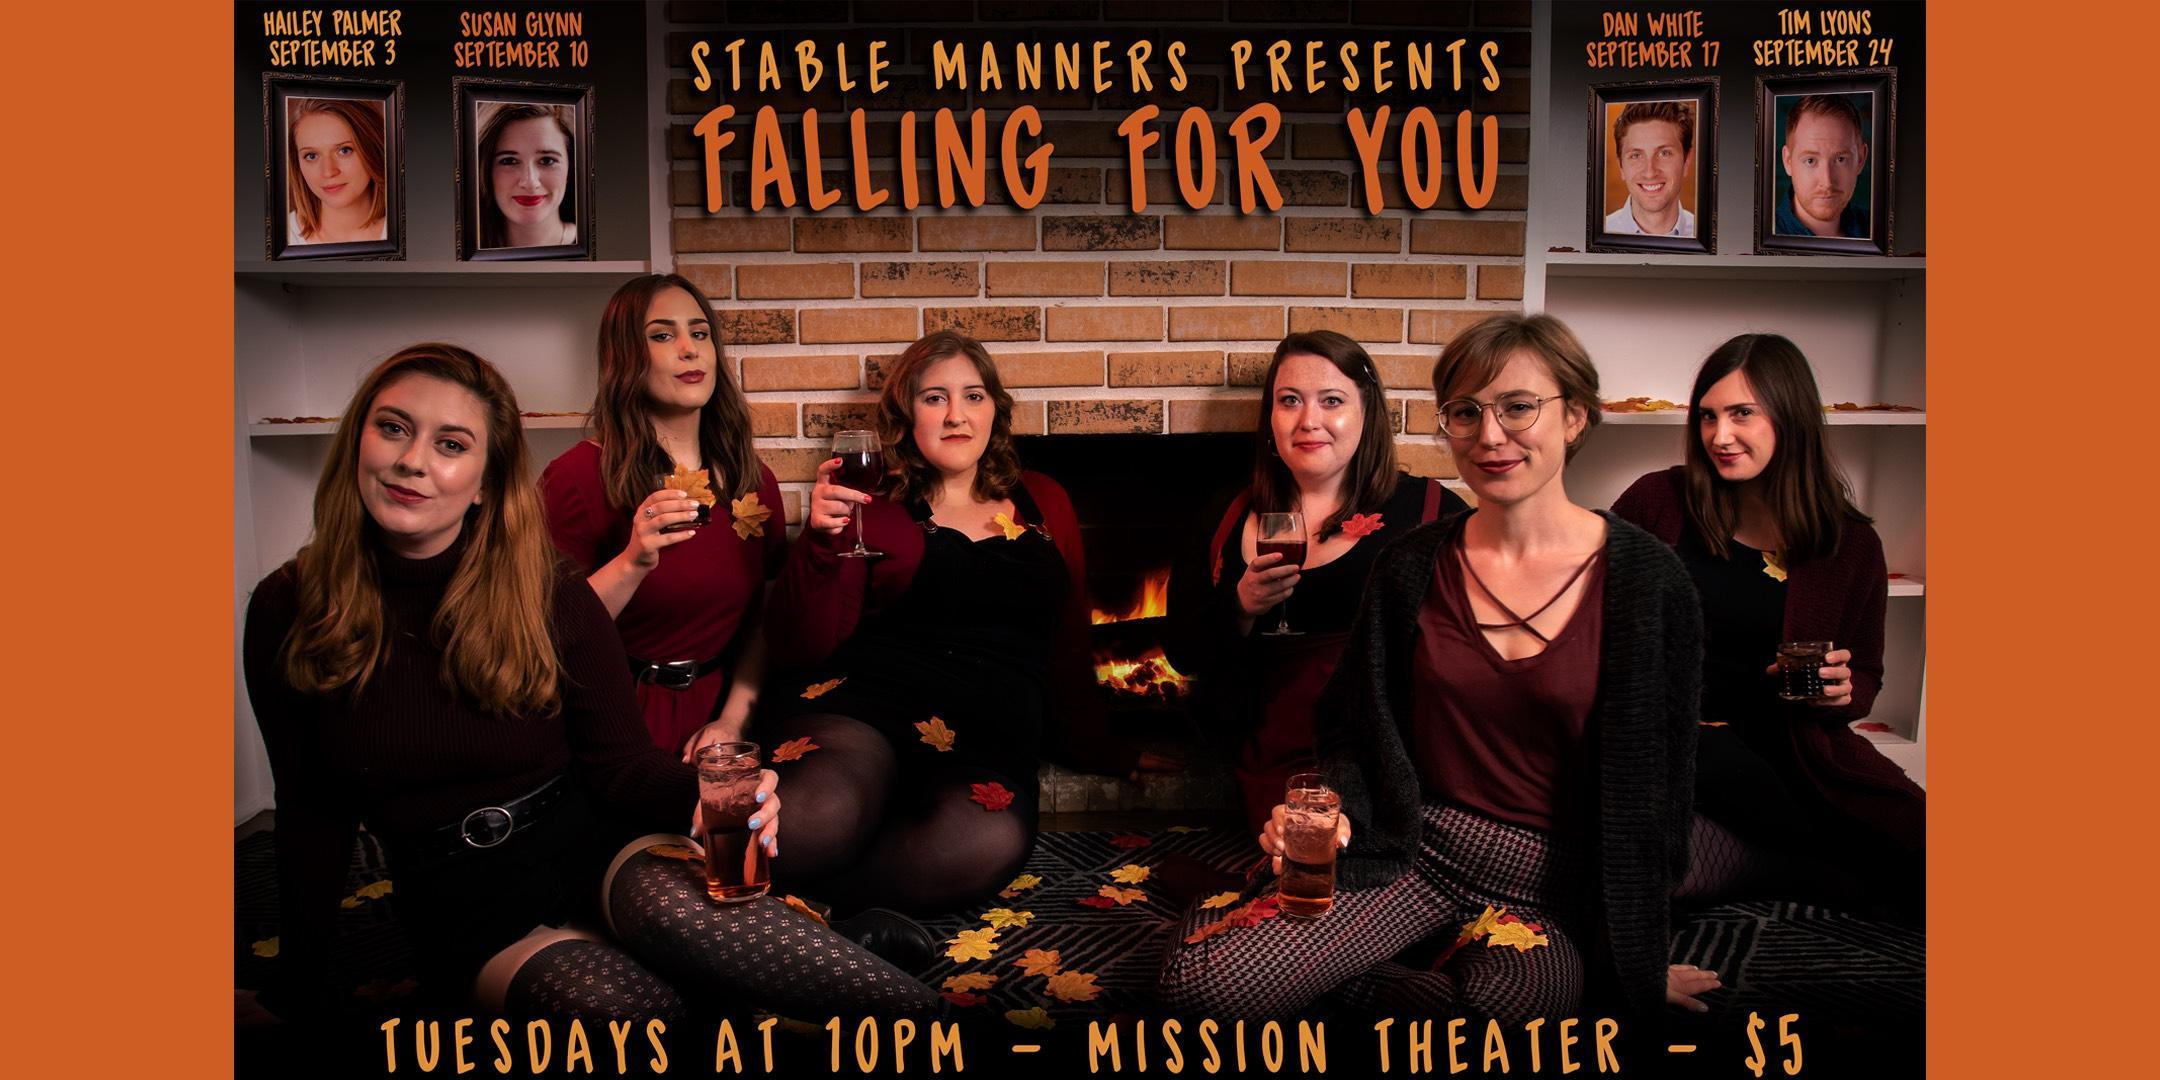 Stable Manners Presents: Falling For You, feat. Dan White